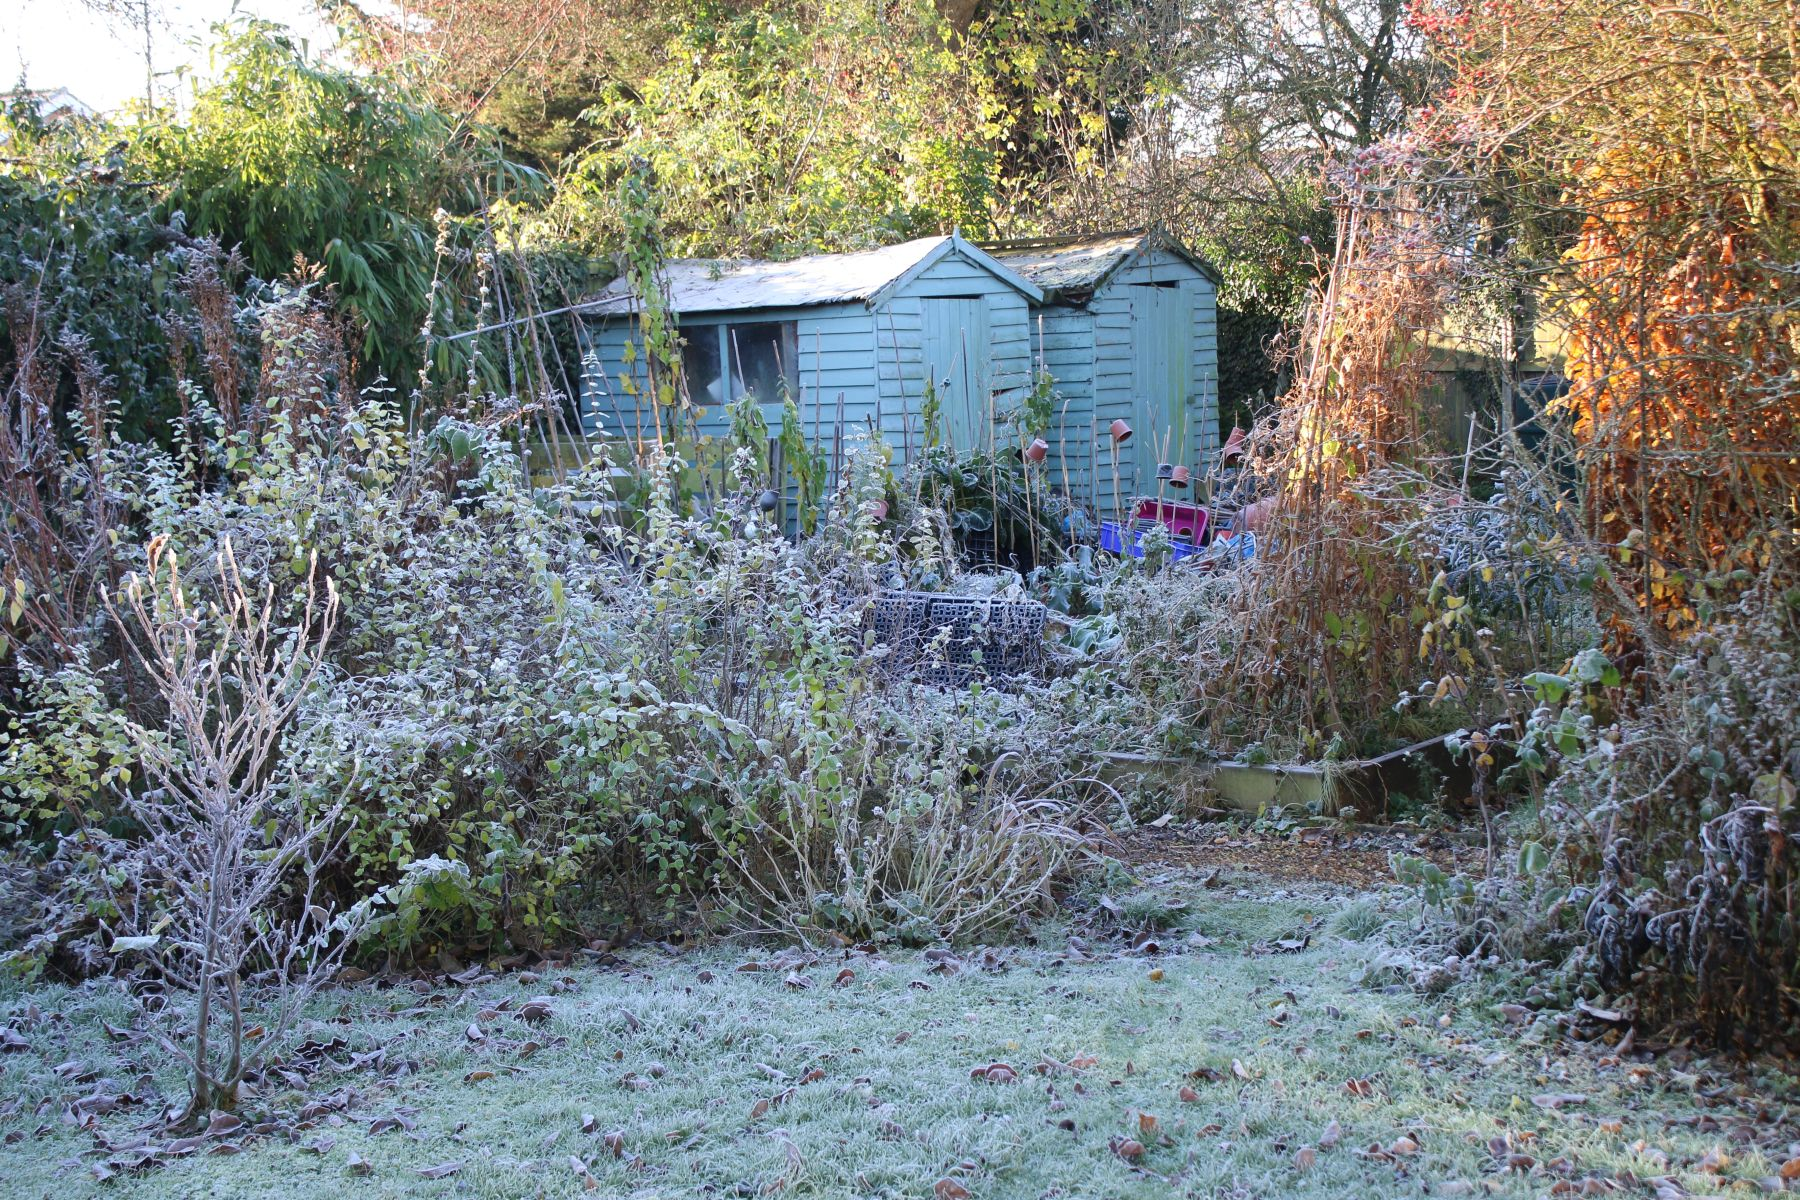 raised veg beds and two sheds painted light green all with dusting of frost for winter garden